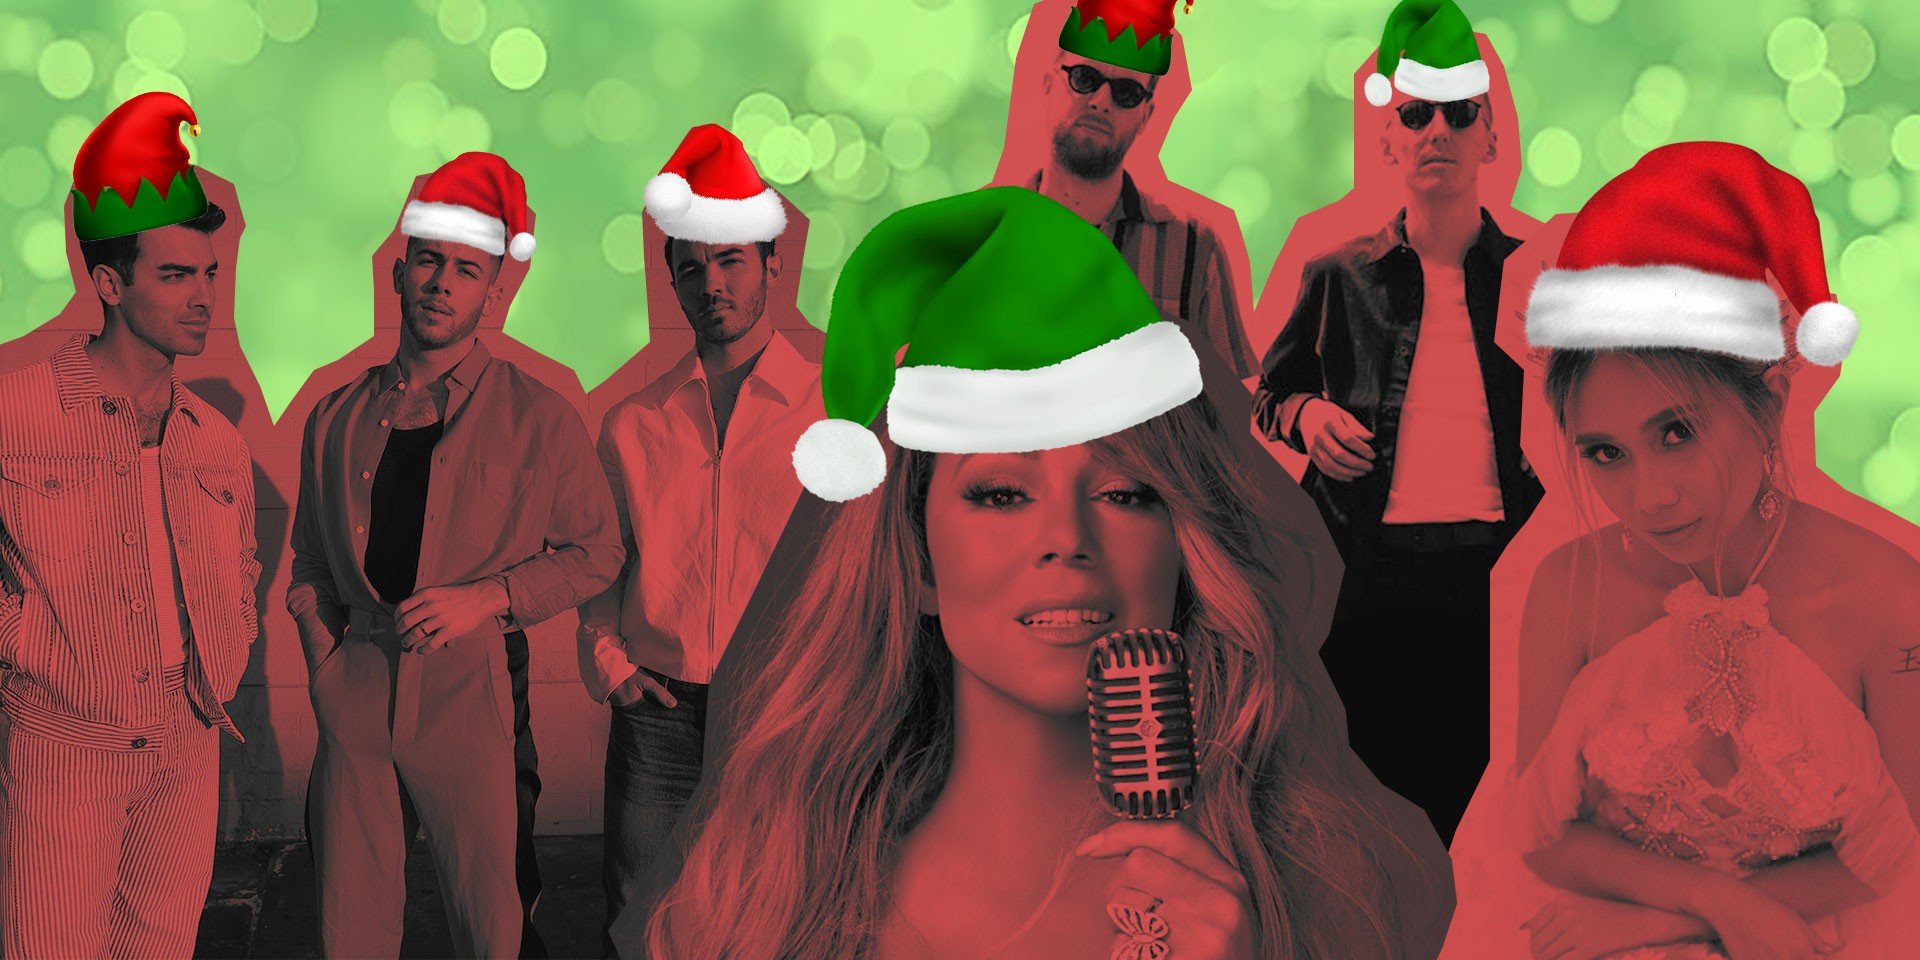 12 Christmas songs to ring in the holidays: Mariah Carey, HONNE, Jonas Brothers, NIKI, and more